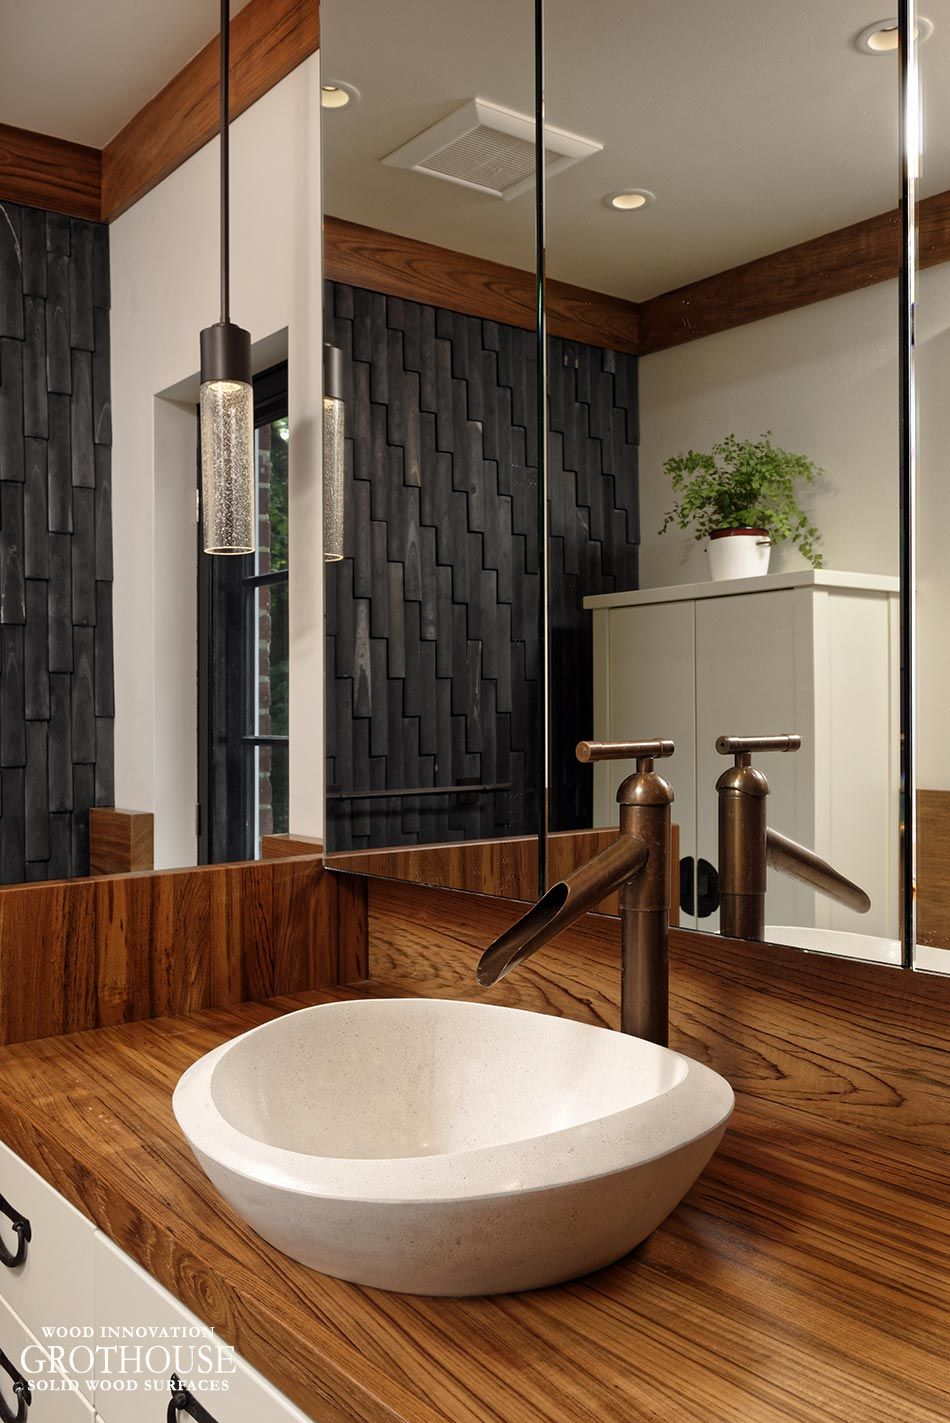 Pin By Grothouse On Bathrooms With Wood Countertops In 2019 Wood